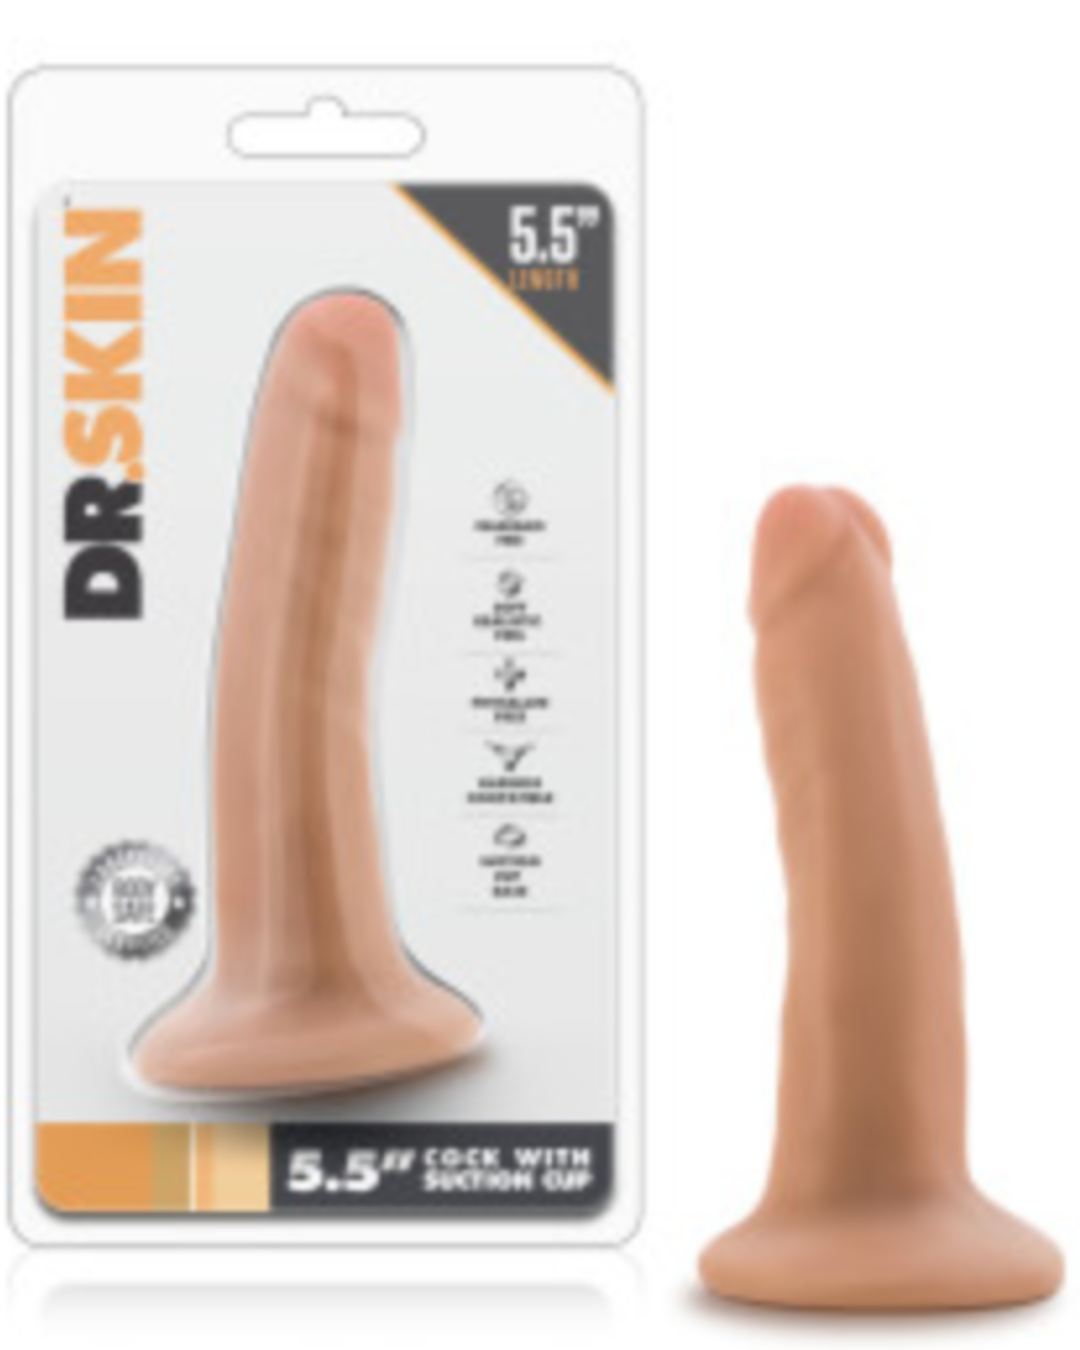 Dr Skin 5.5 Inch Dildo by Blush Novelties - Vanilla package and toy